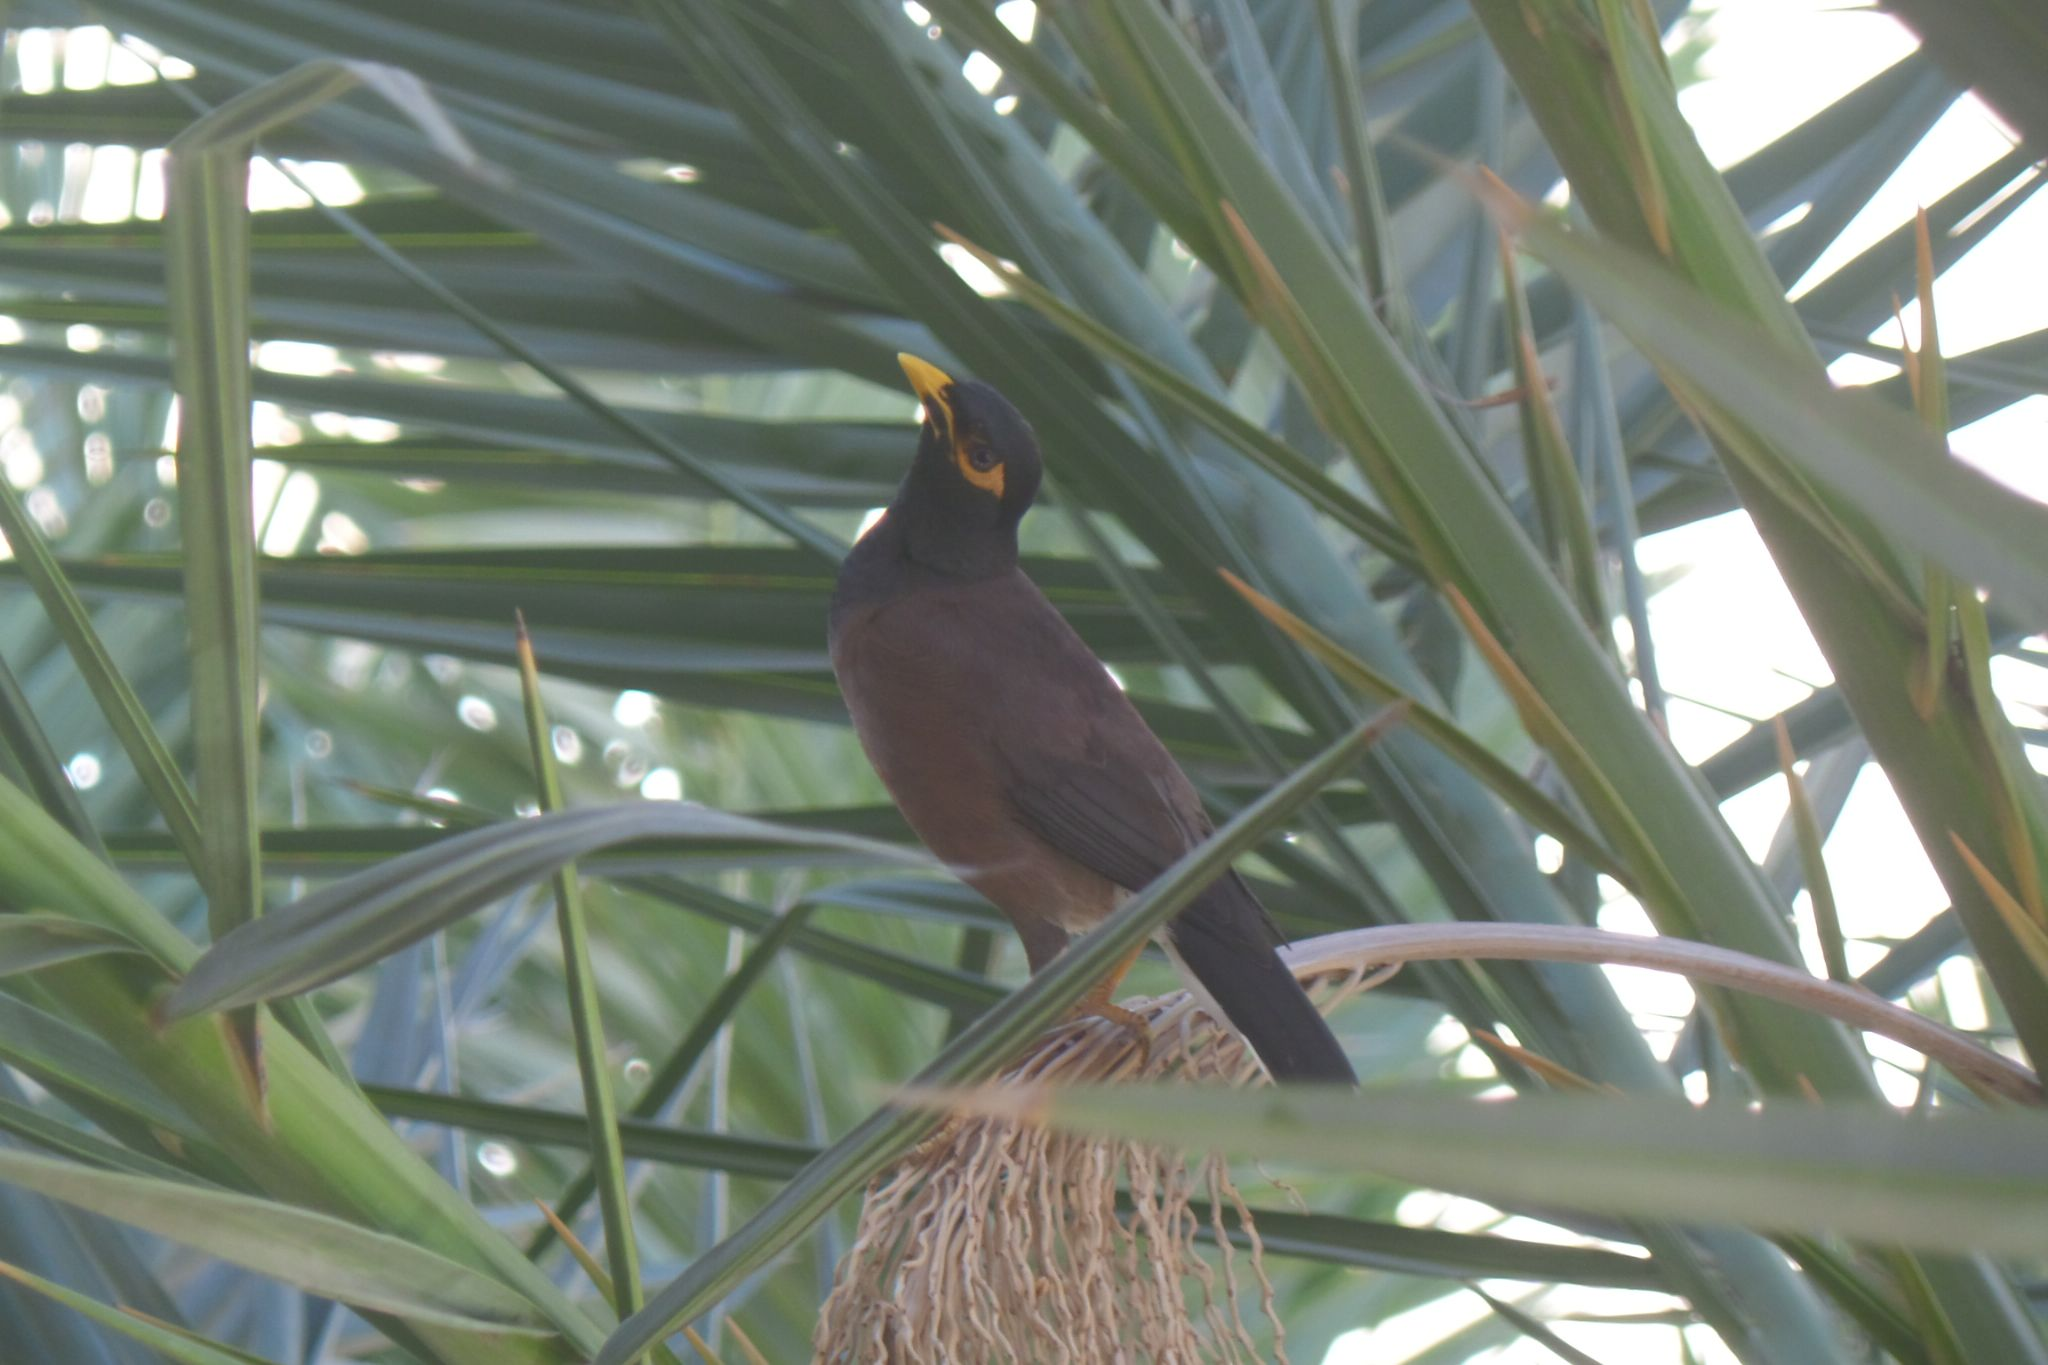 Indian Mynah in Israel -Natanya - 23.6.2014 by Francine Waterman